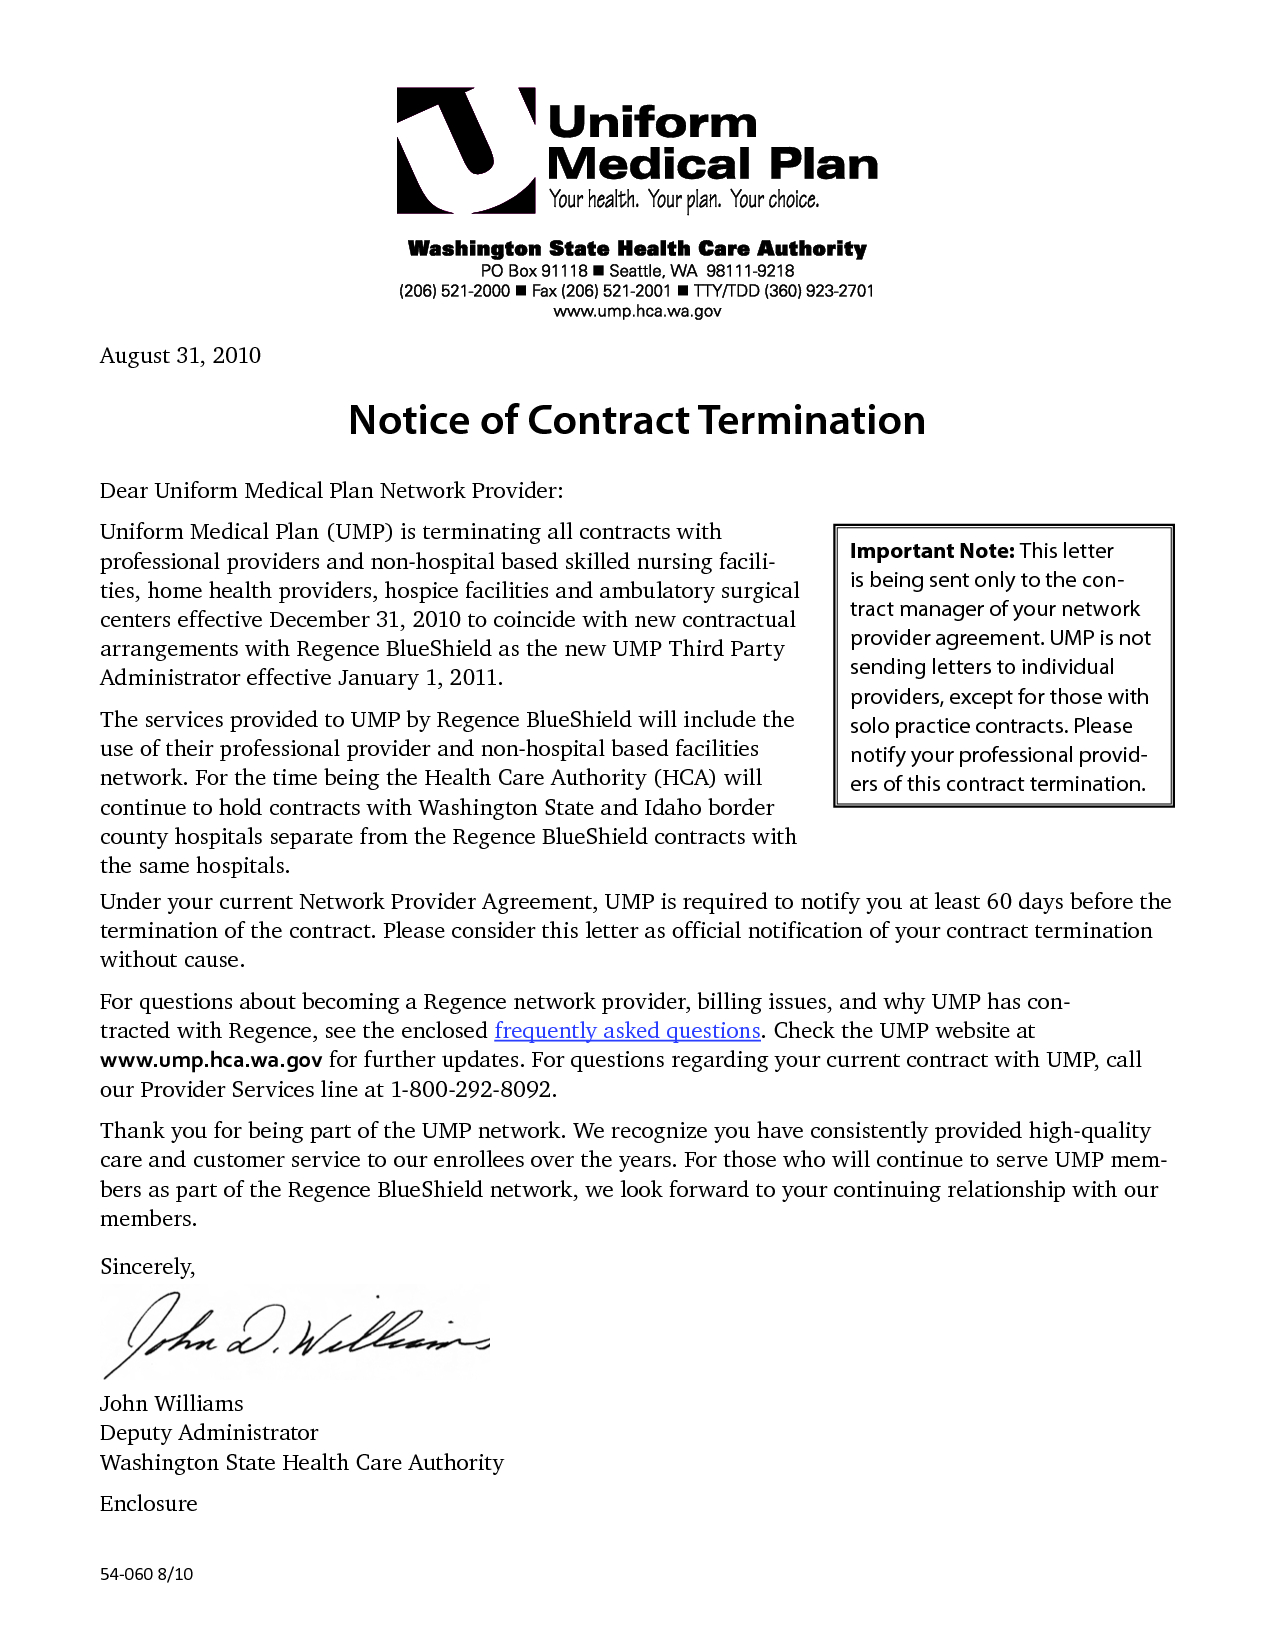 Termination Letter Template - Sample Letter for Termination Services